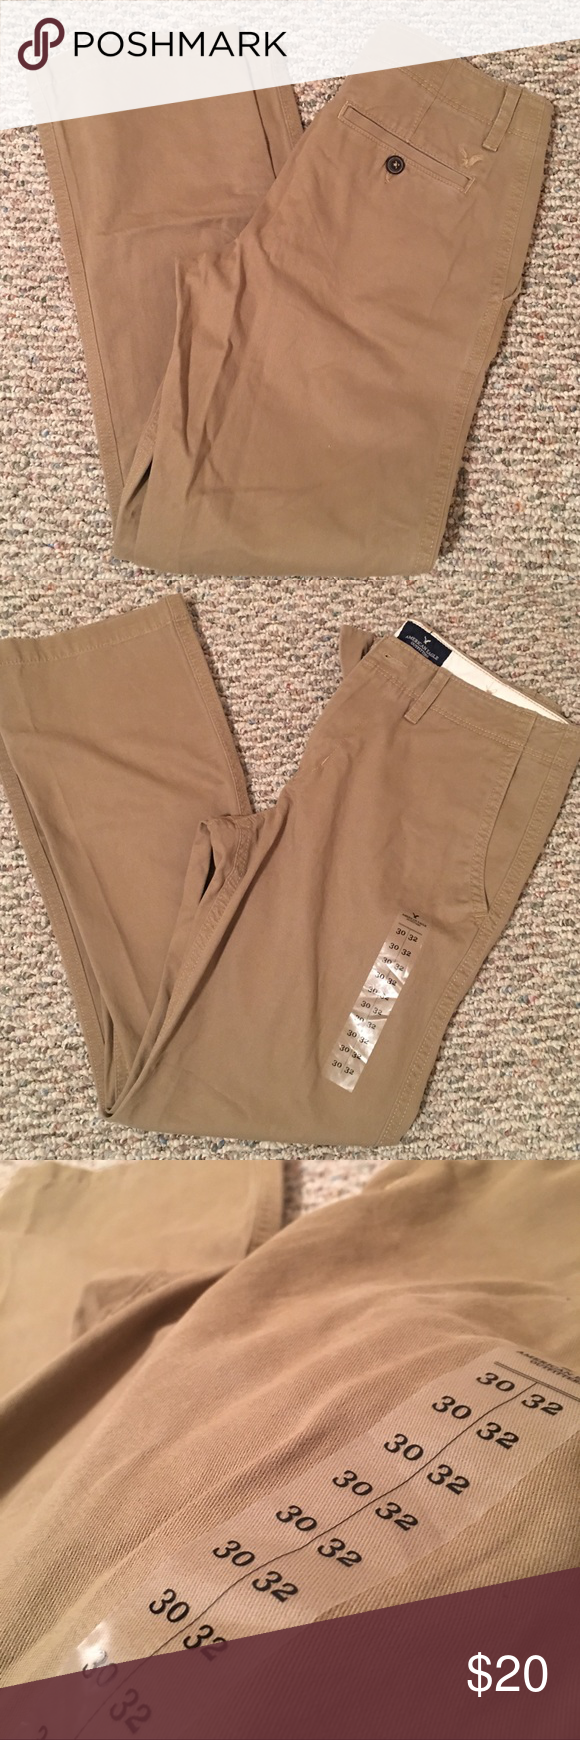 American Eagle Men Khakis Size 30/32 Men Khaki Pants. Original Boot style. NWT. Perfect condition, purchased as a gift but never gave them. Smoke and pet free home. American Eagle Outfitters Pants Chinos & Khakis